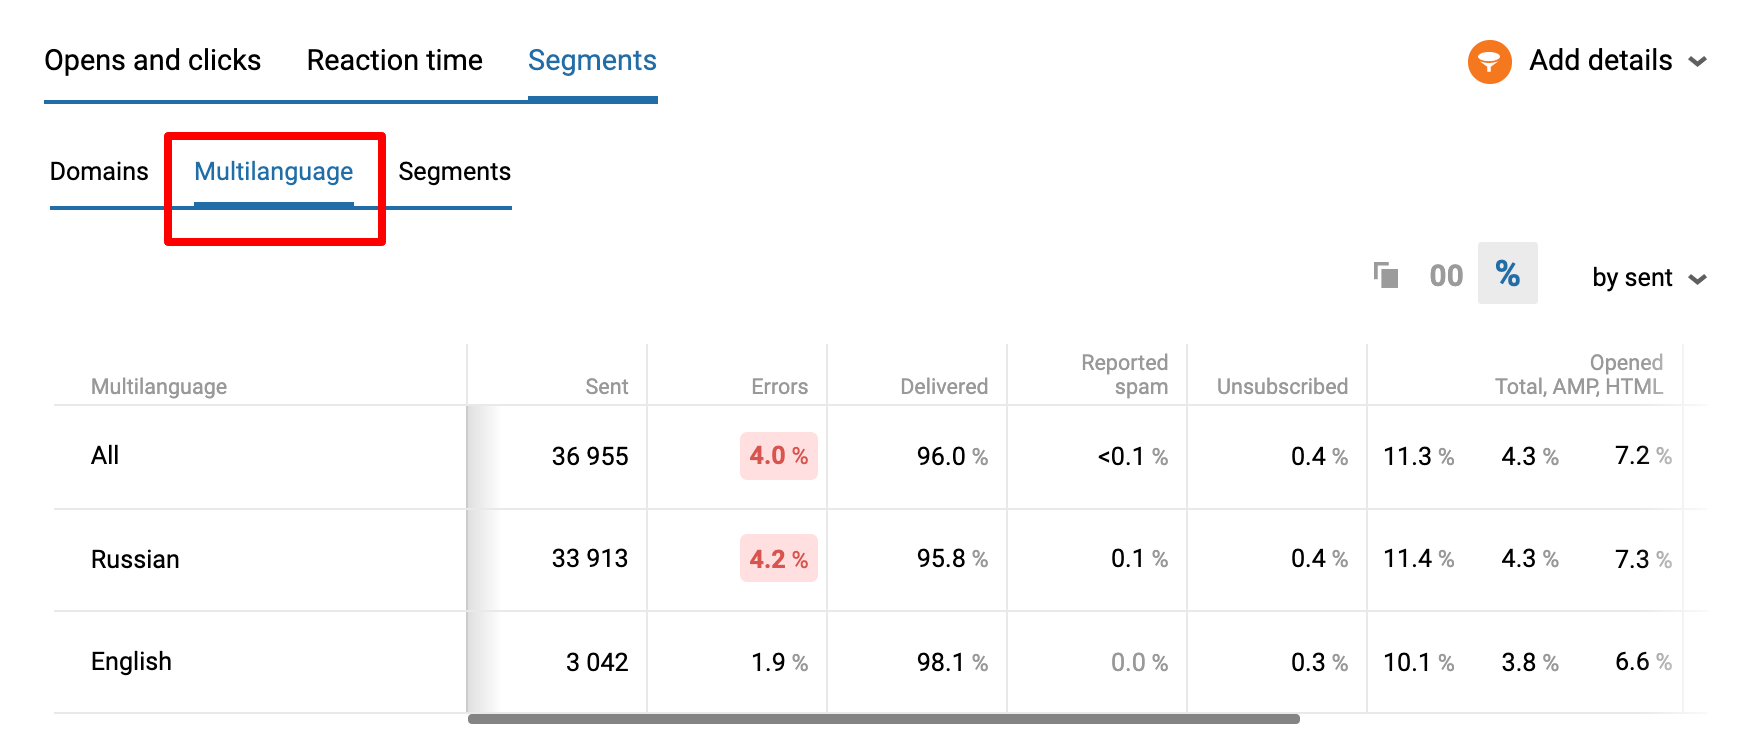 Additional Statistics for AMP campaigns